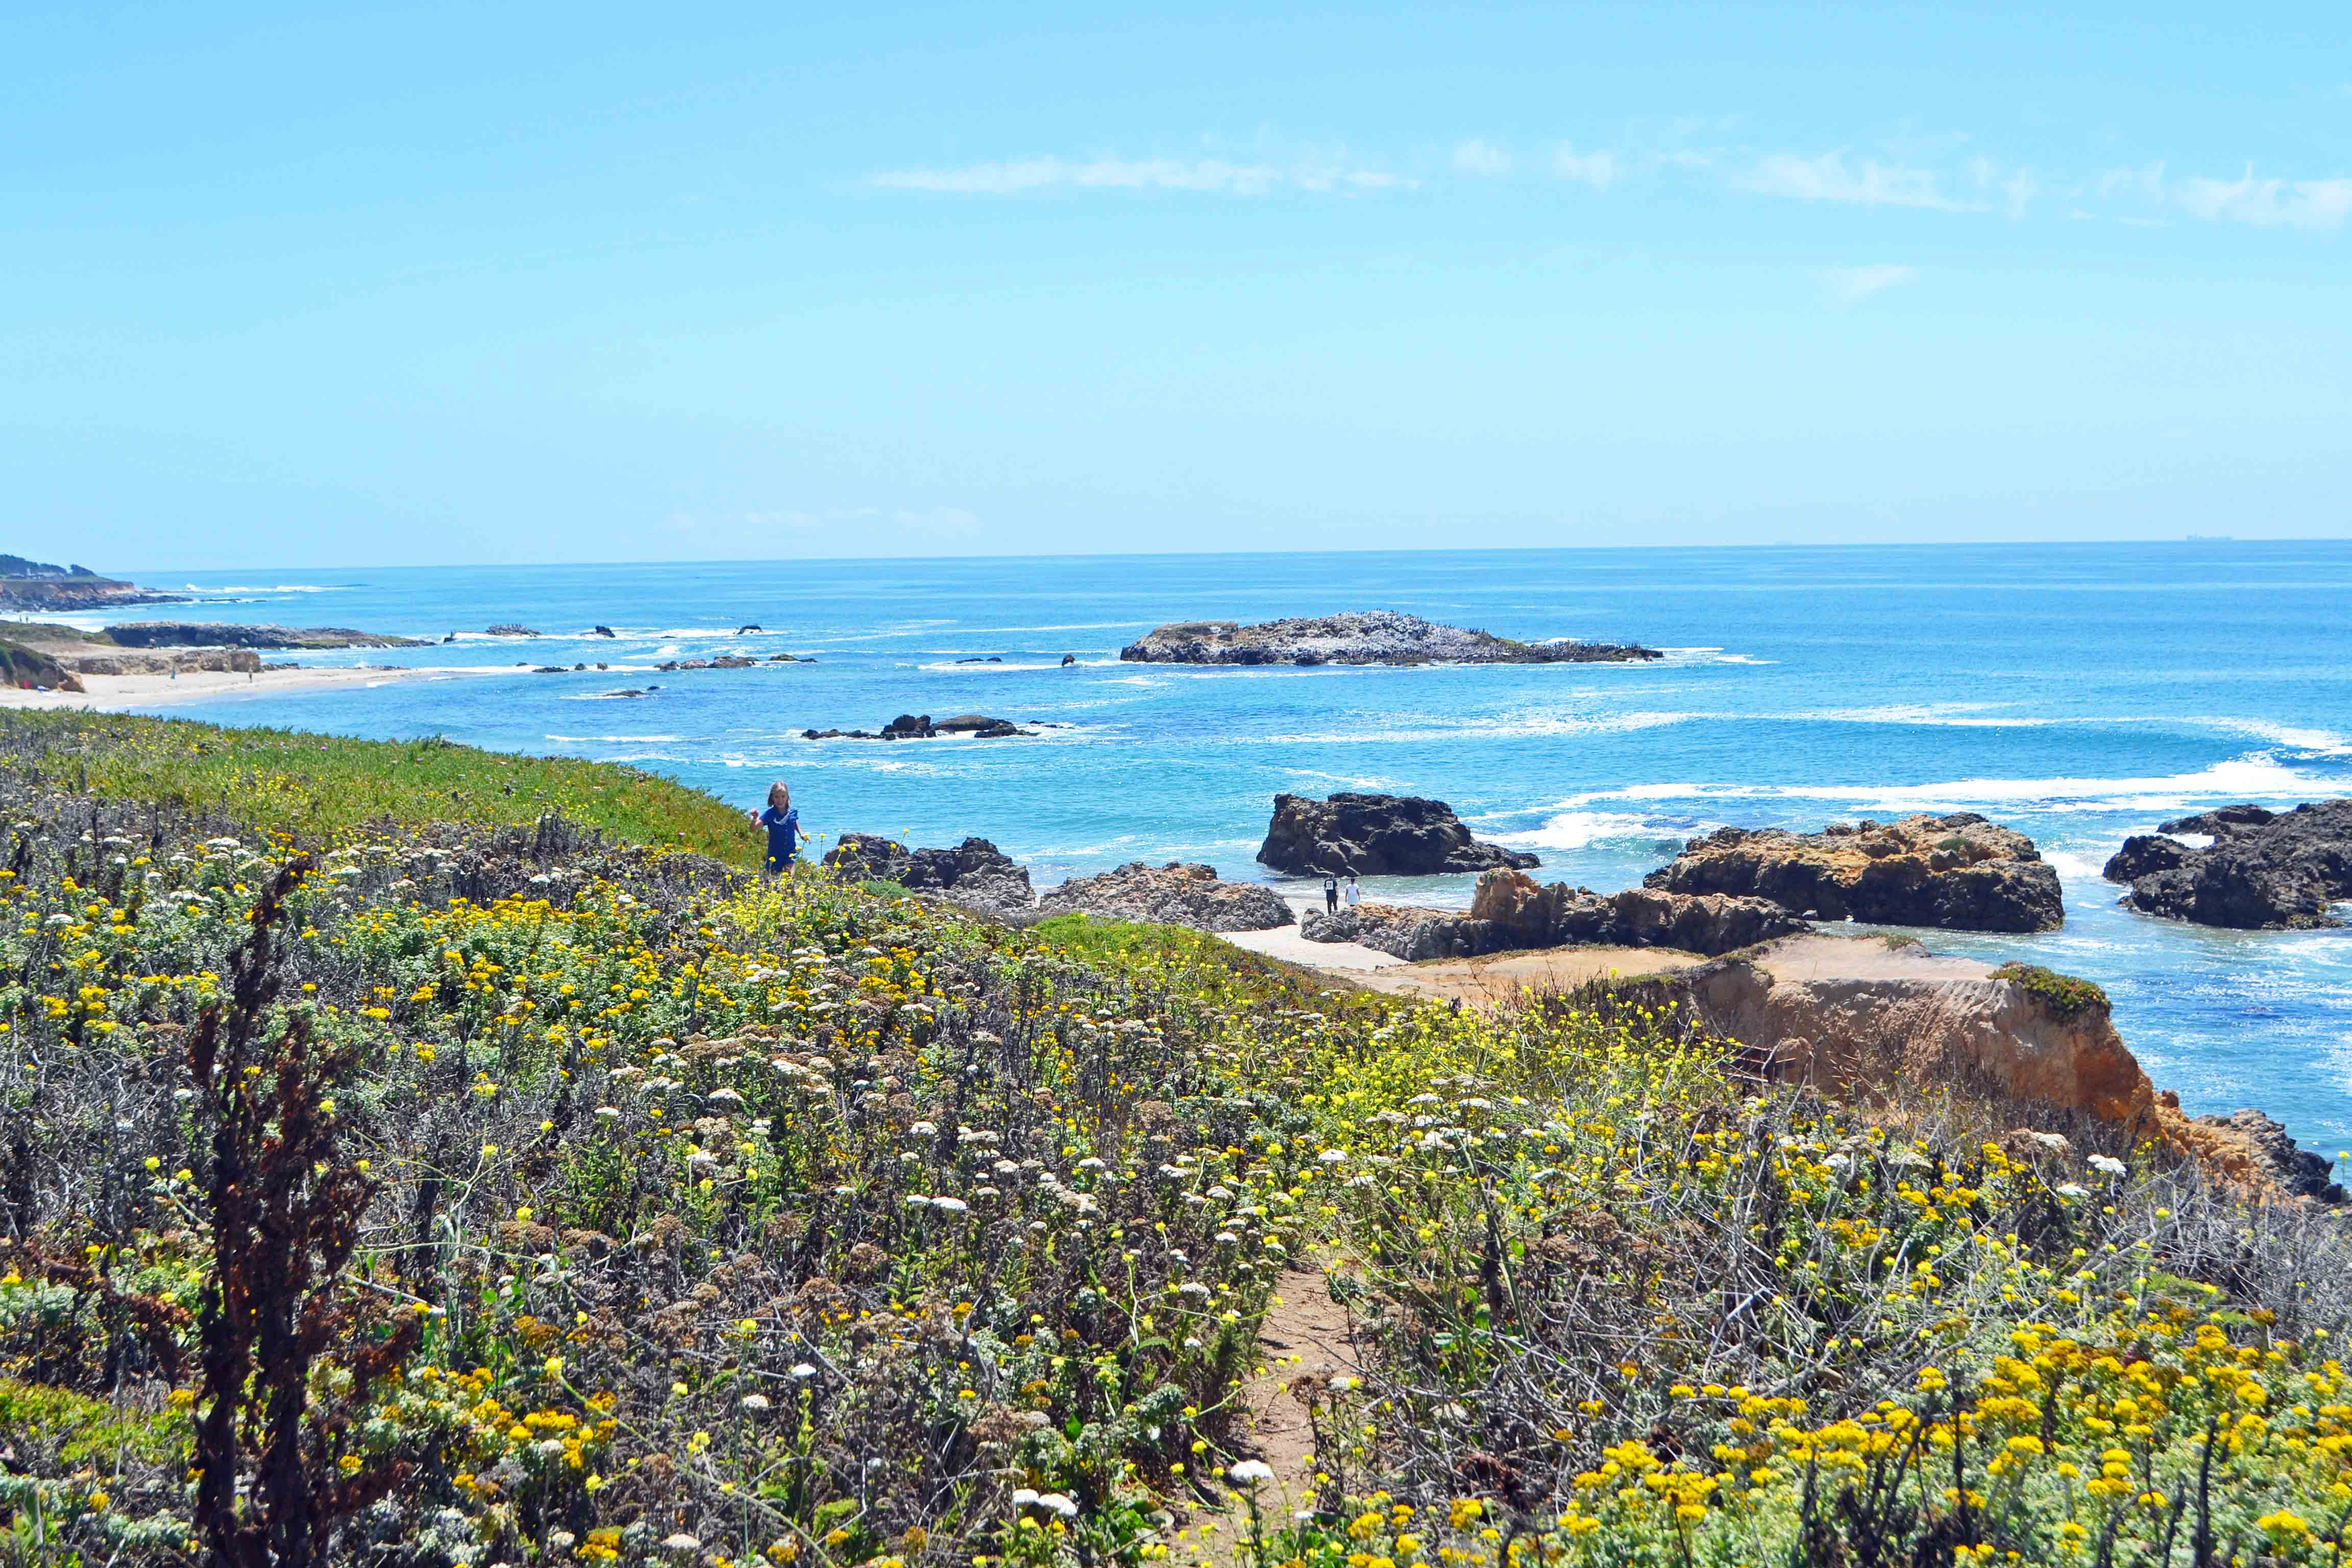 Pescadero Beach California Pacific Coast Highway 1 Road Trip Guide